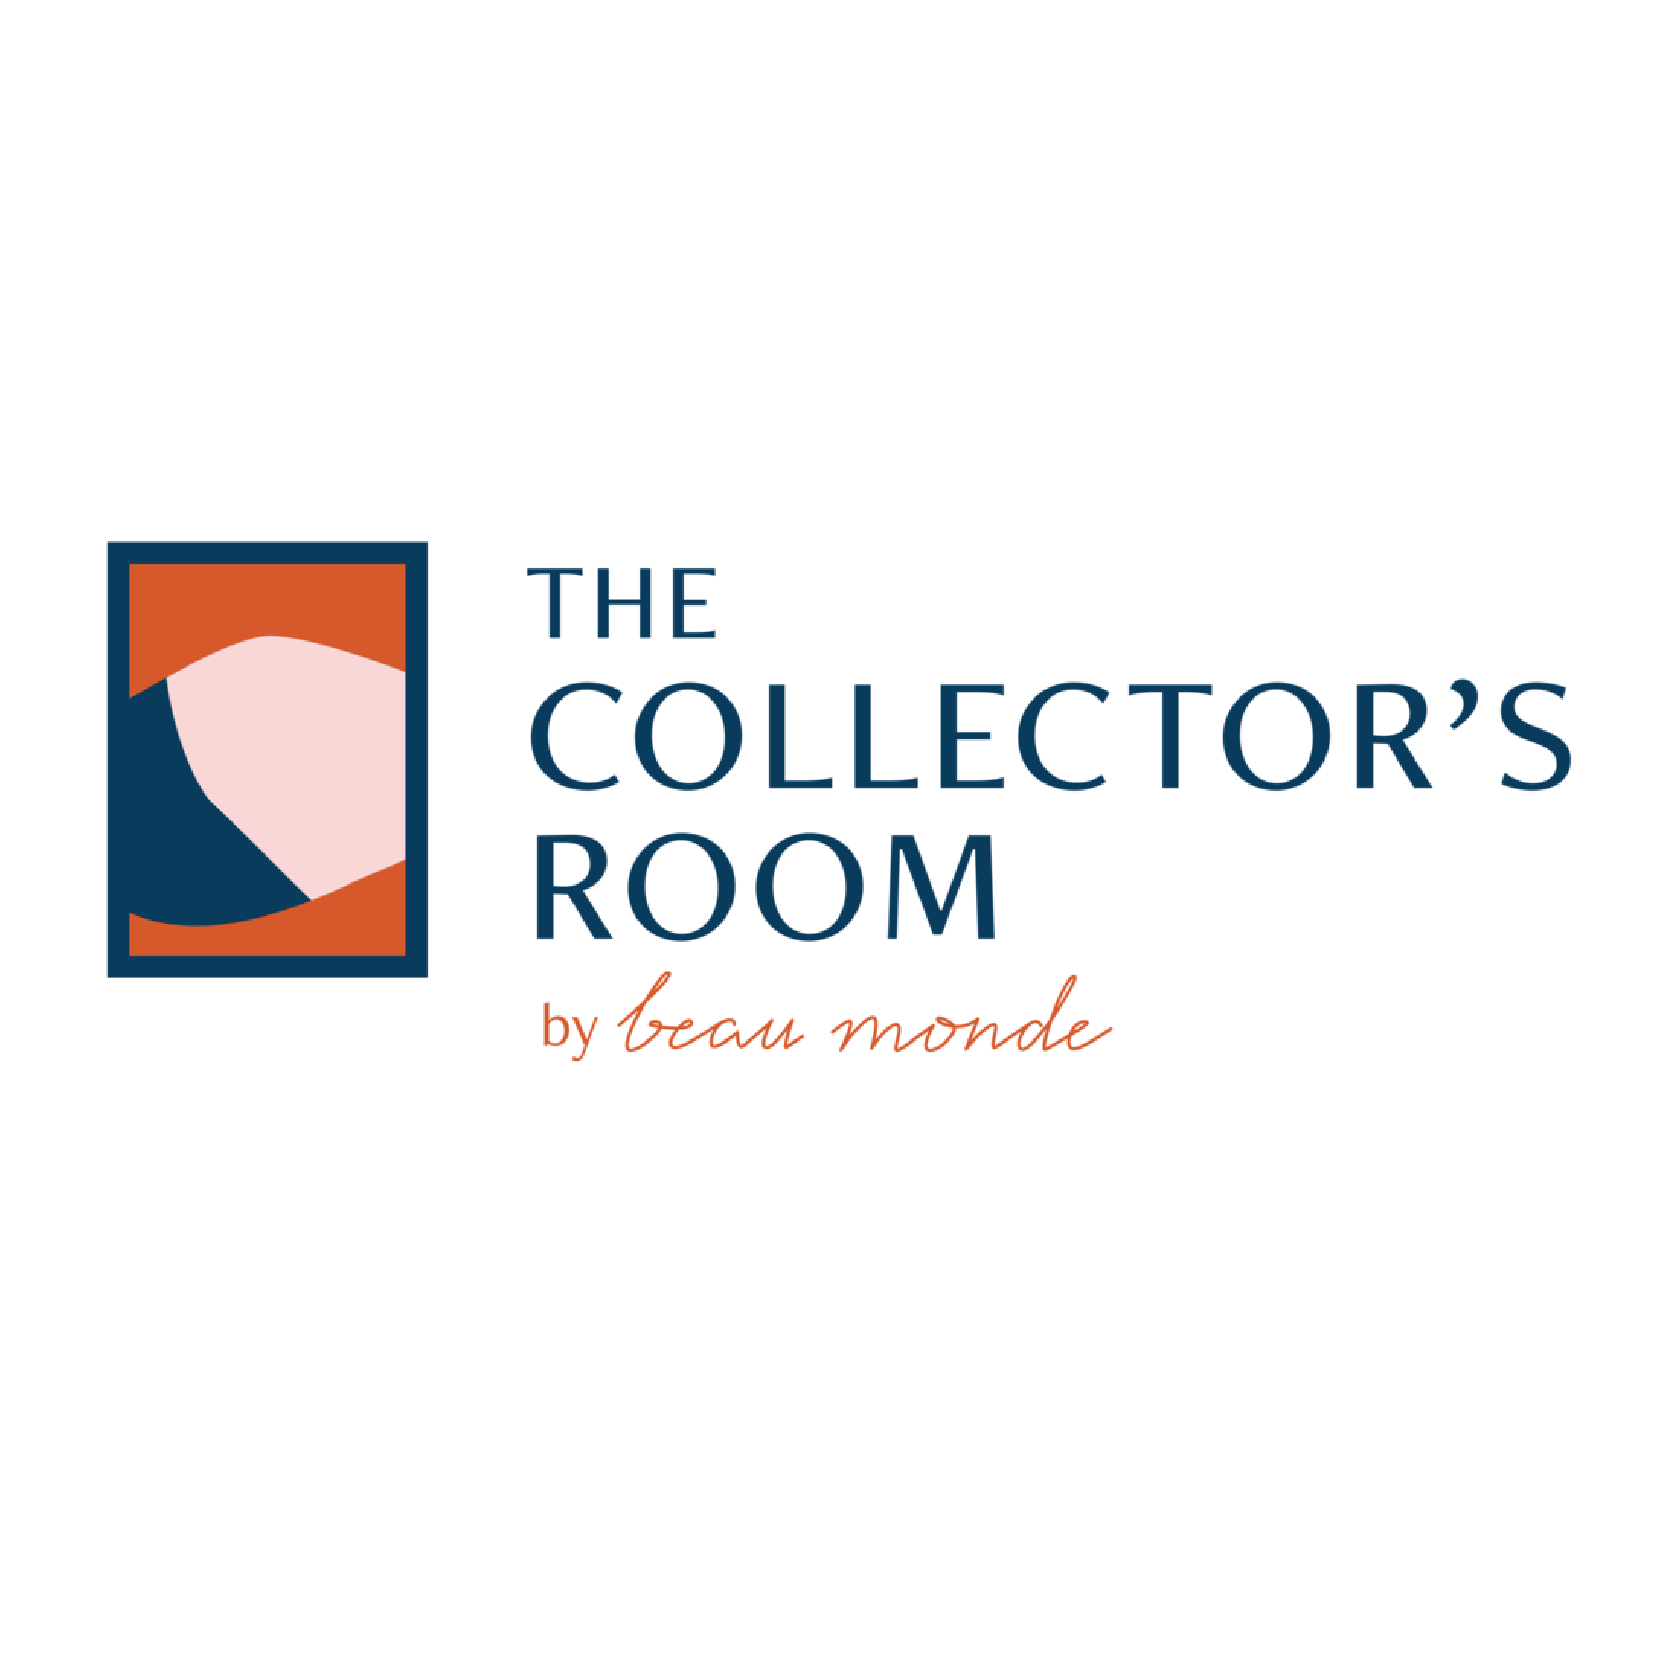 The Collector's Room